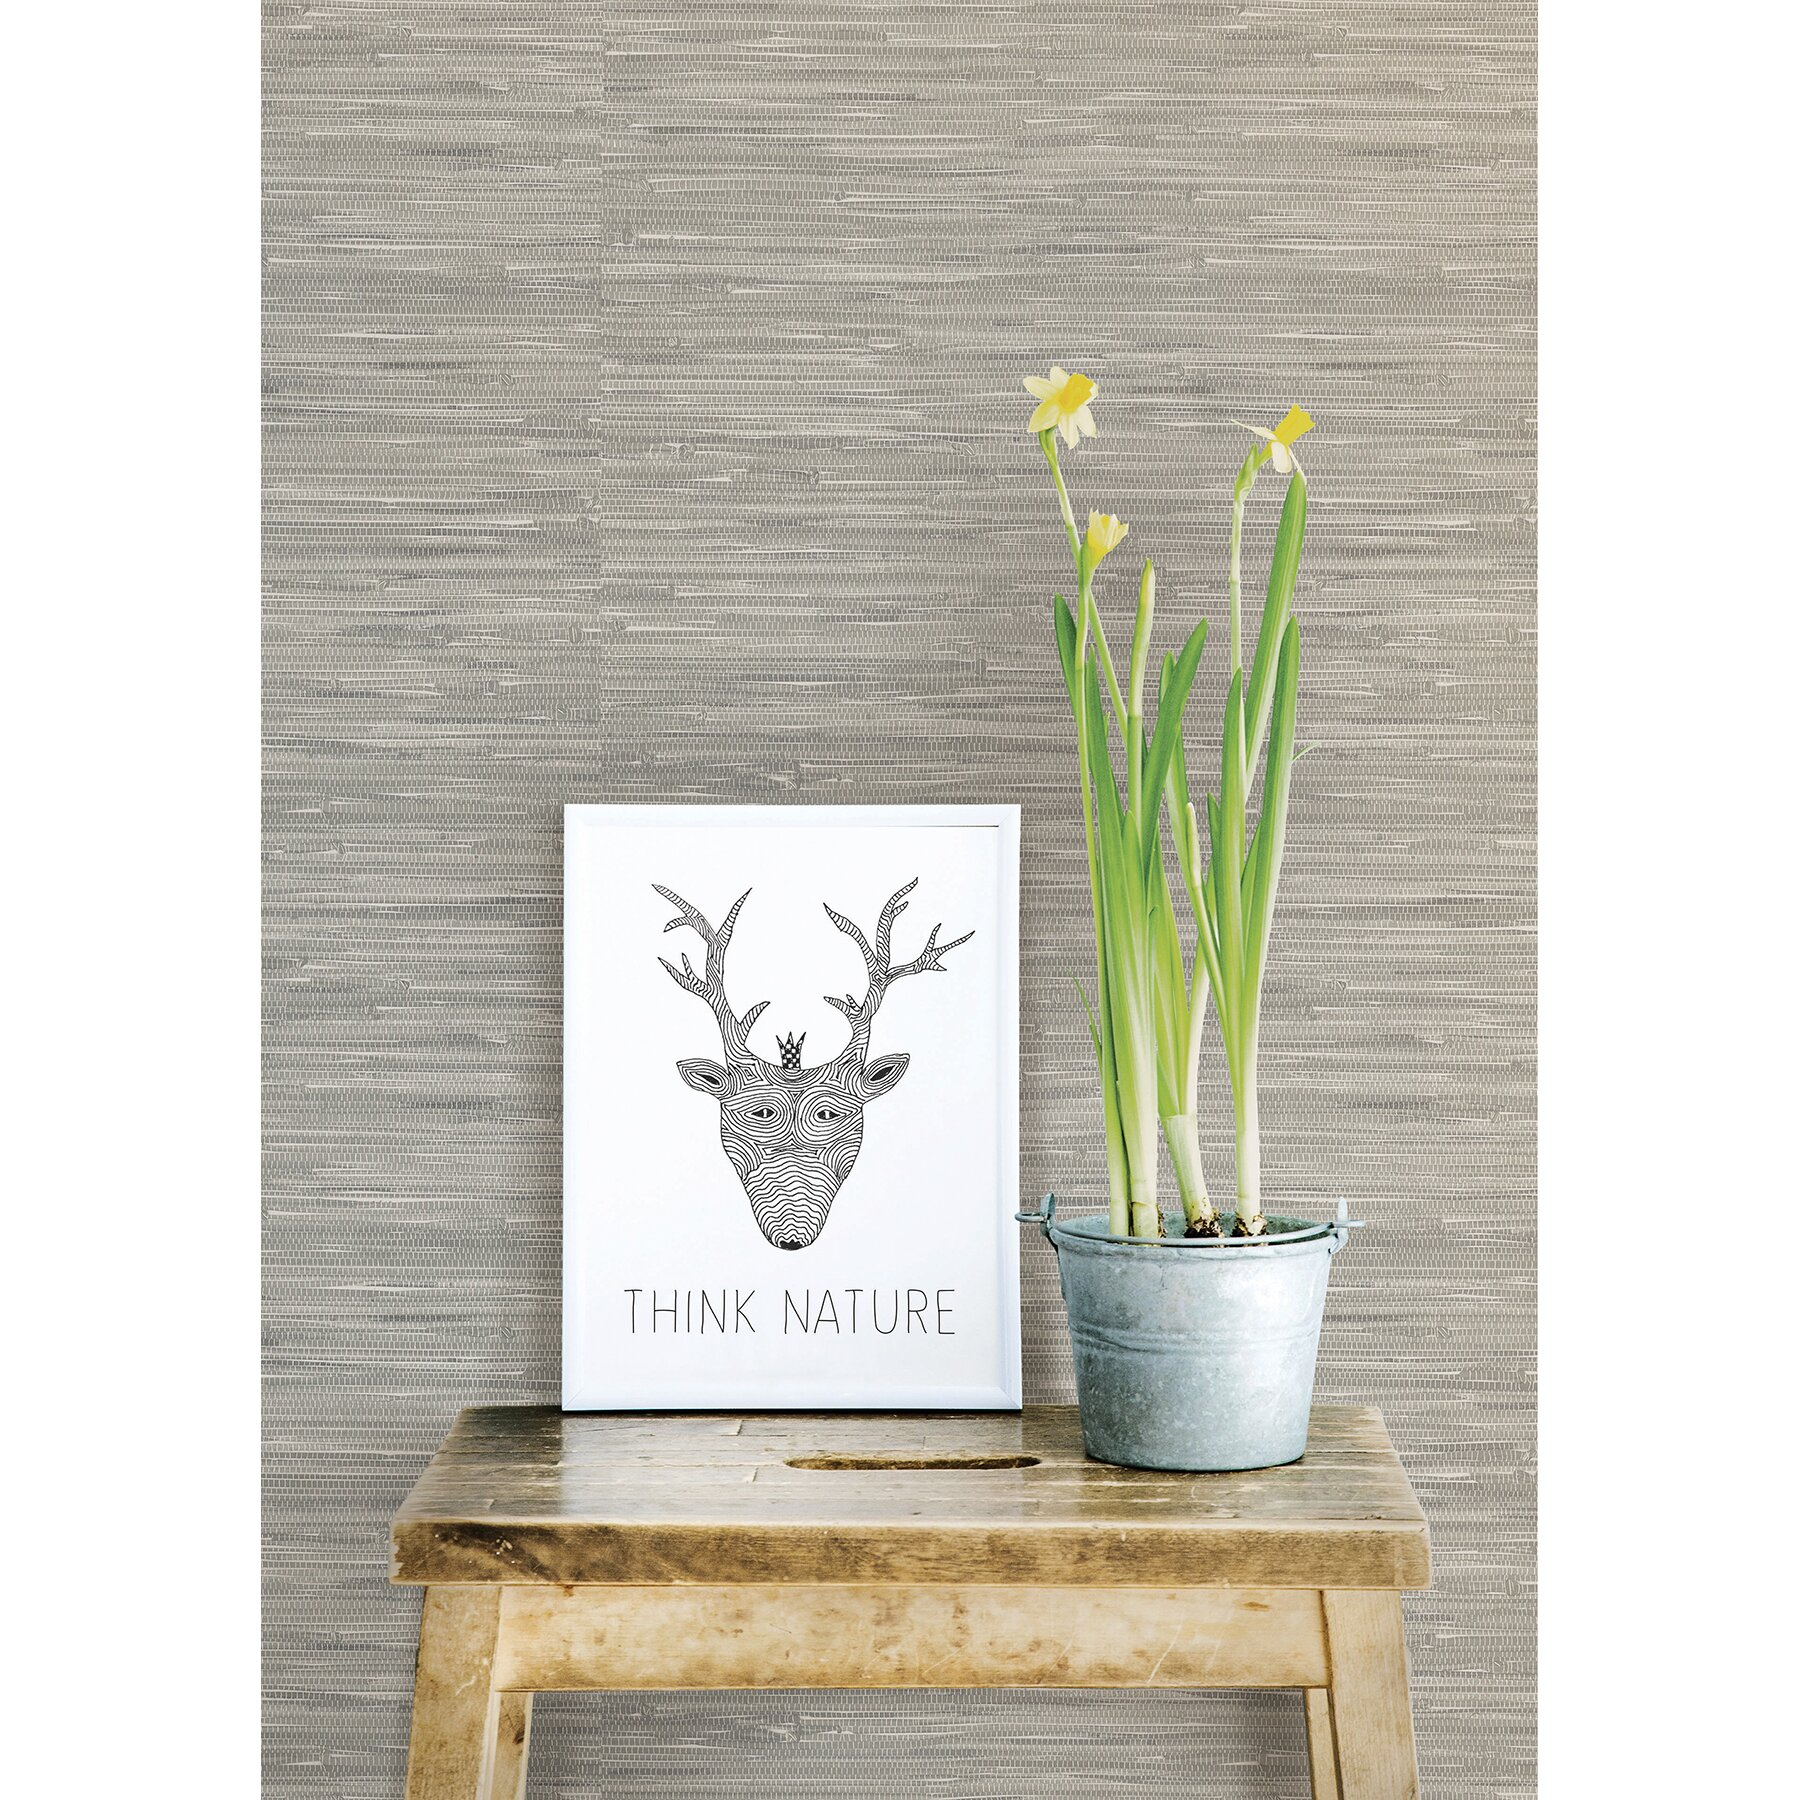 Wallpops 18 39 x 20 5 tibetan grasscloth peel and stick for Self stick grasscloth wallpaper